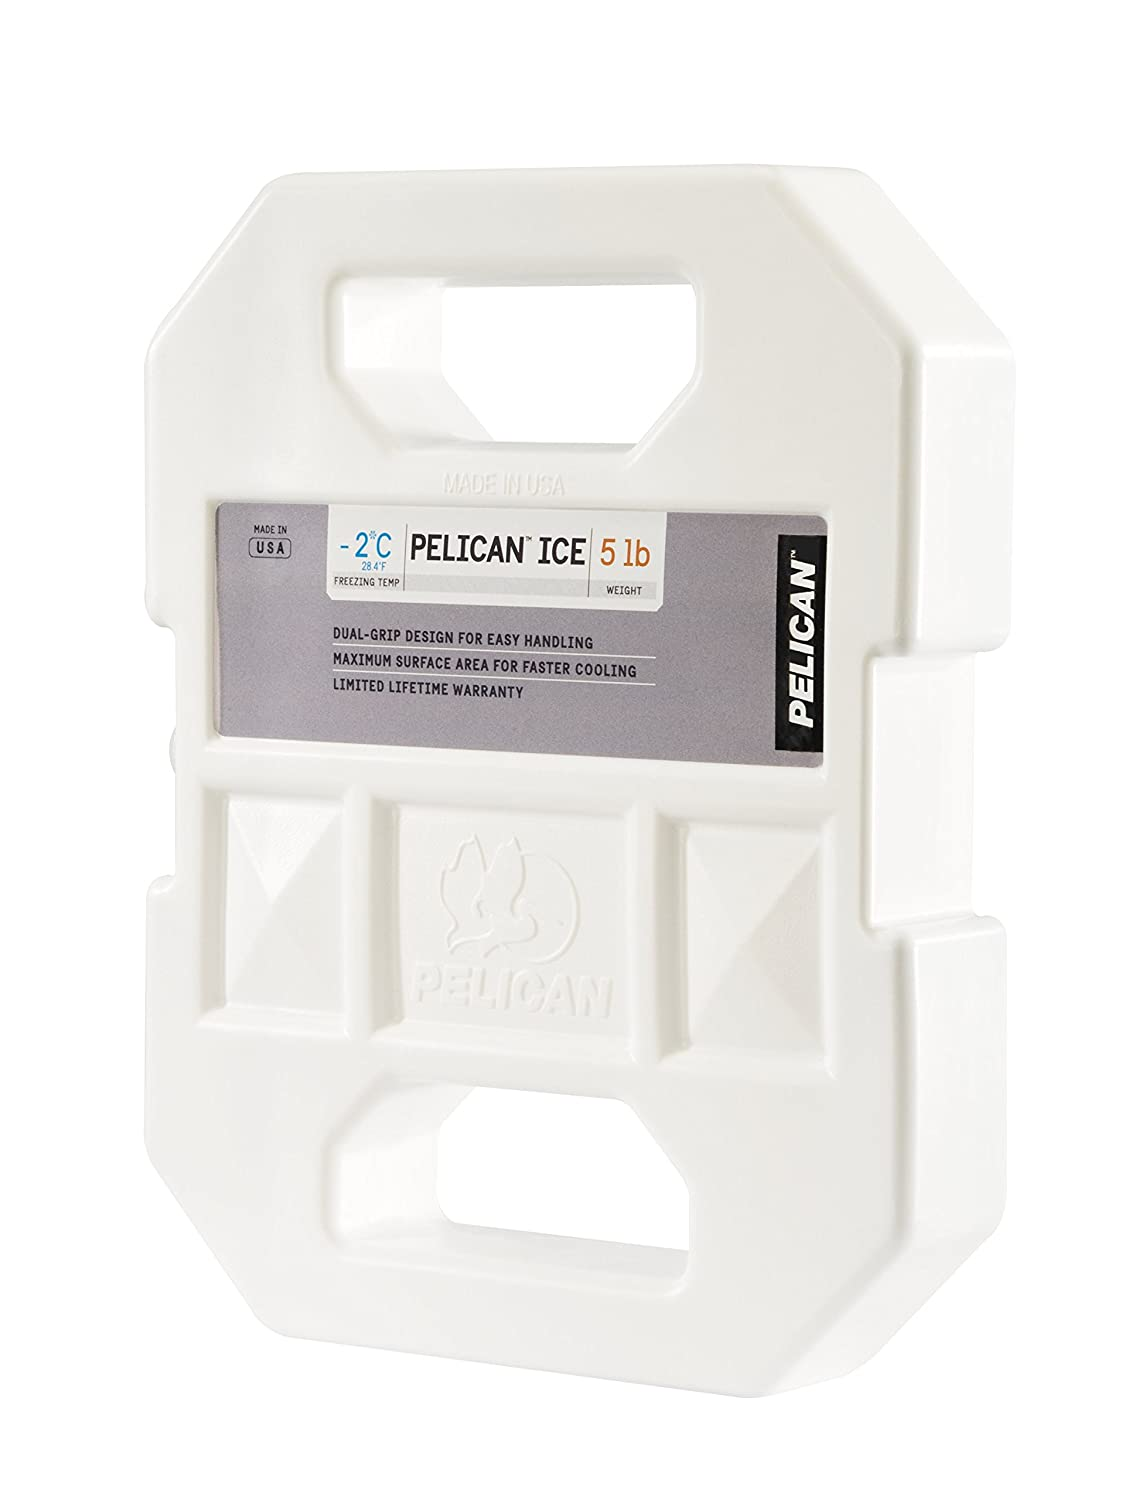 White Pelican Cooler 5lb Ice Pack